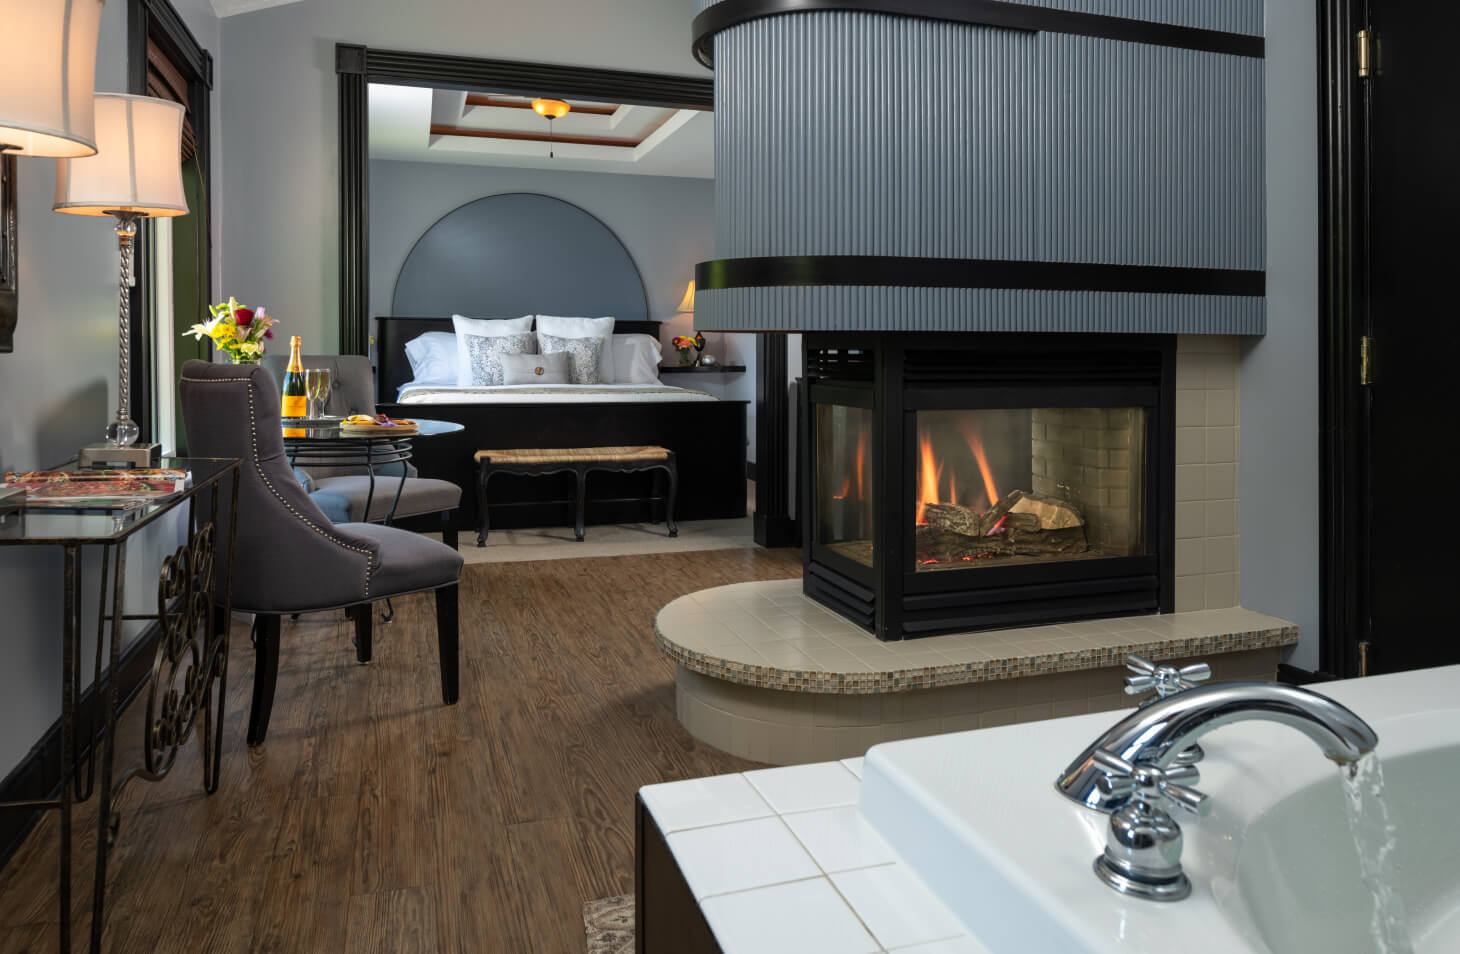 Sir Lancelot Suite Soaking Tub, Fireplace and King Bed